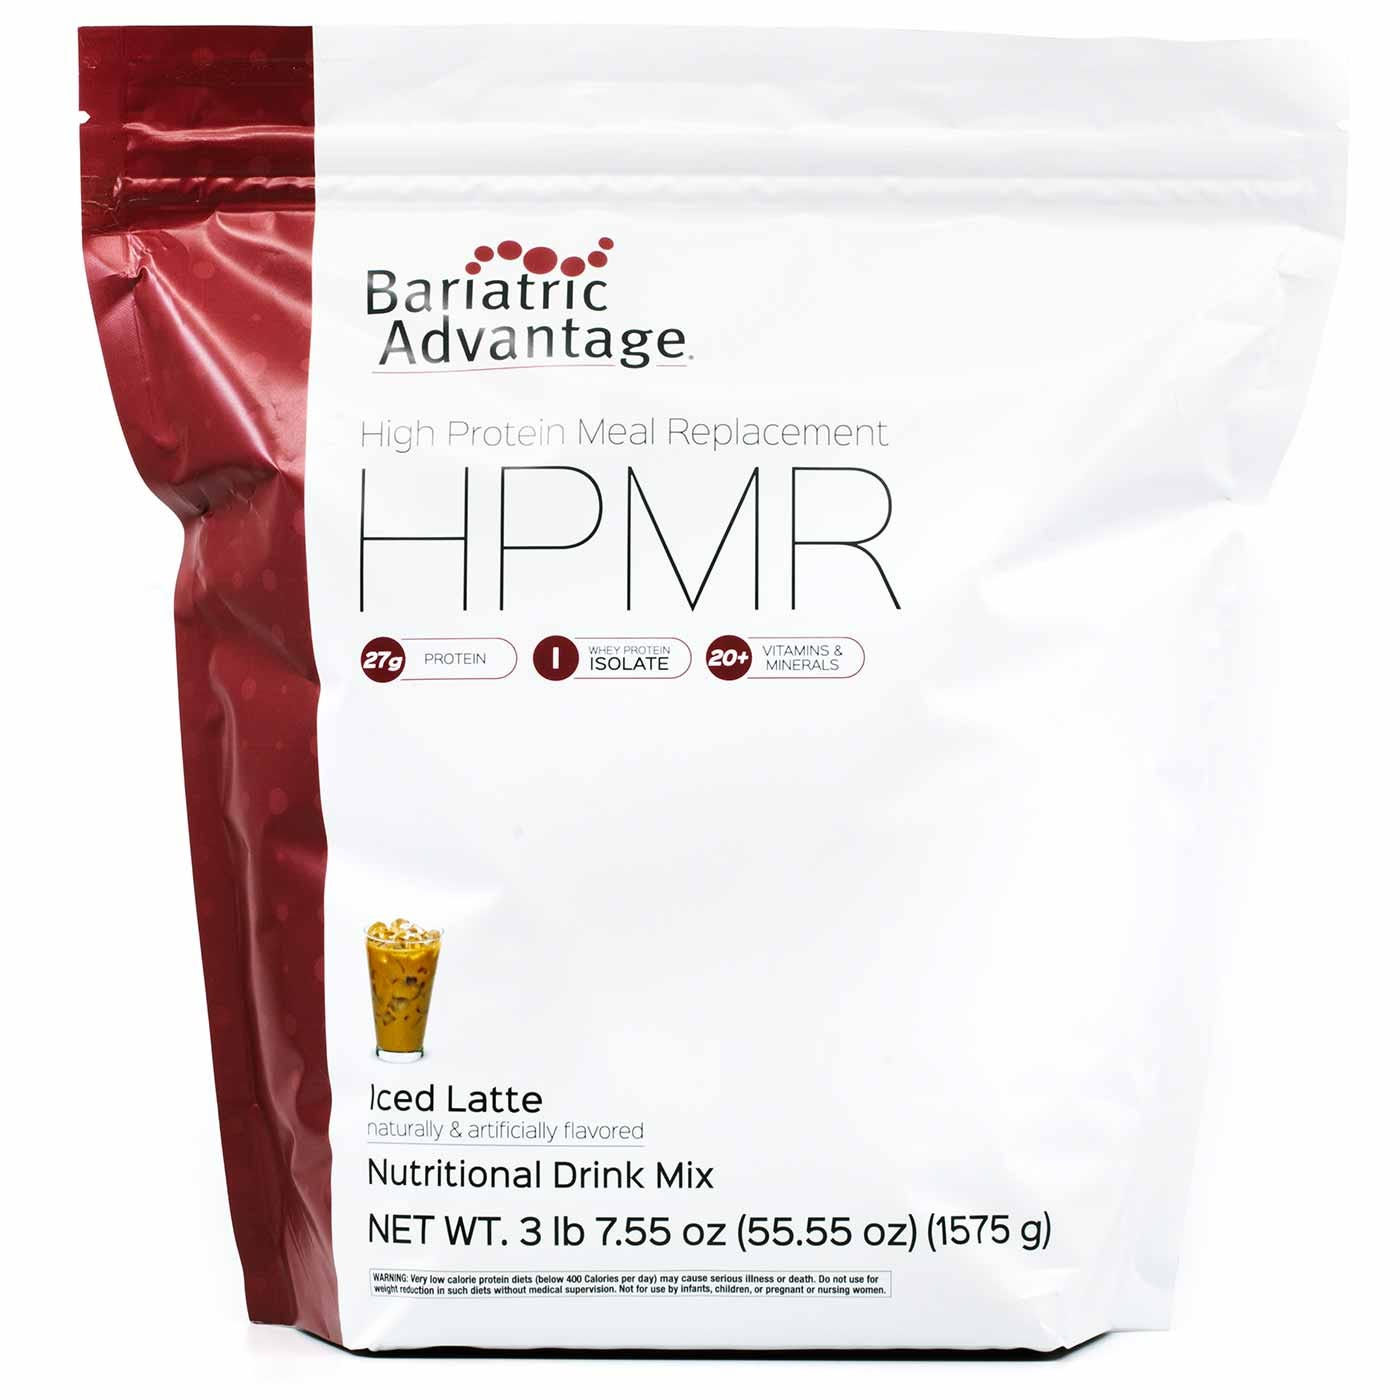 Bariatric Advantage High Protein Meal Replacement, Iced Latte (55oz)